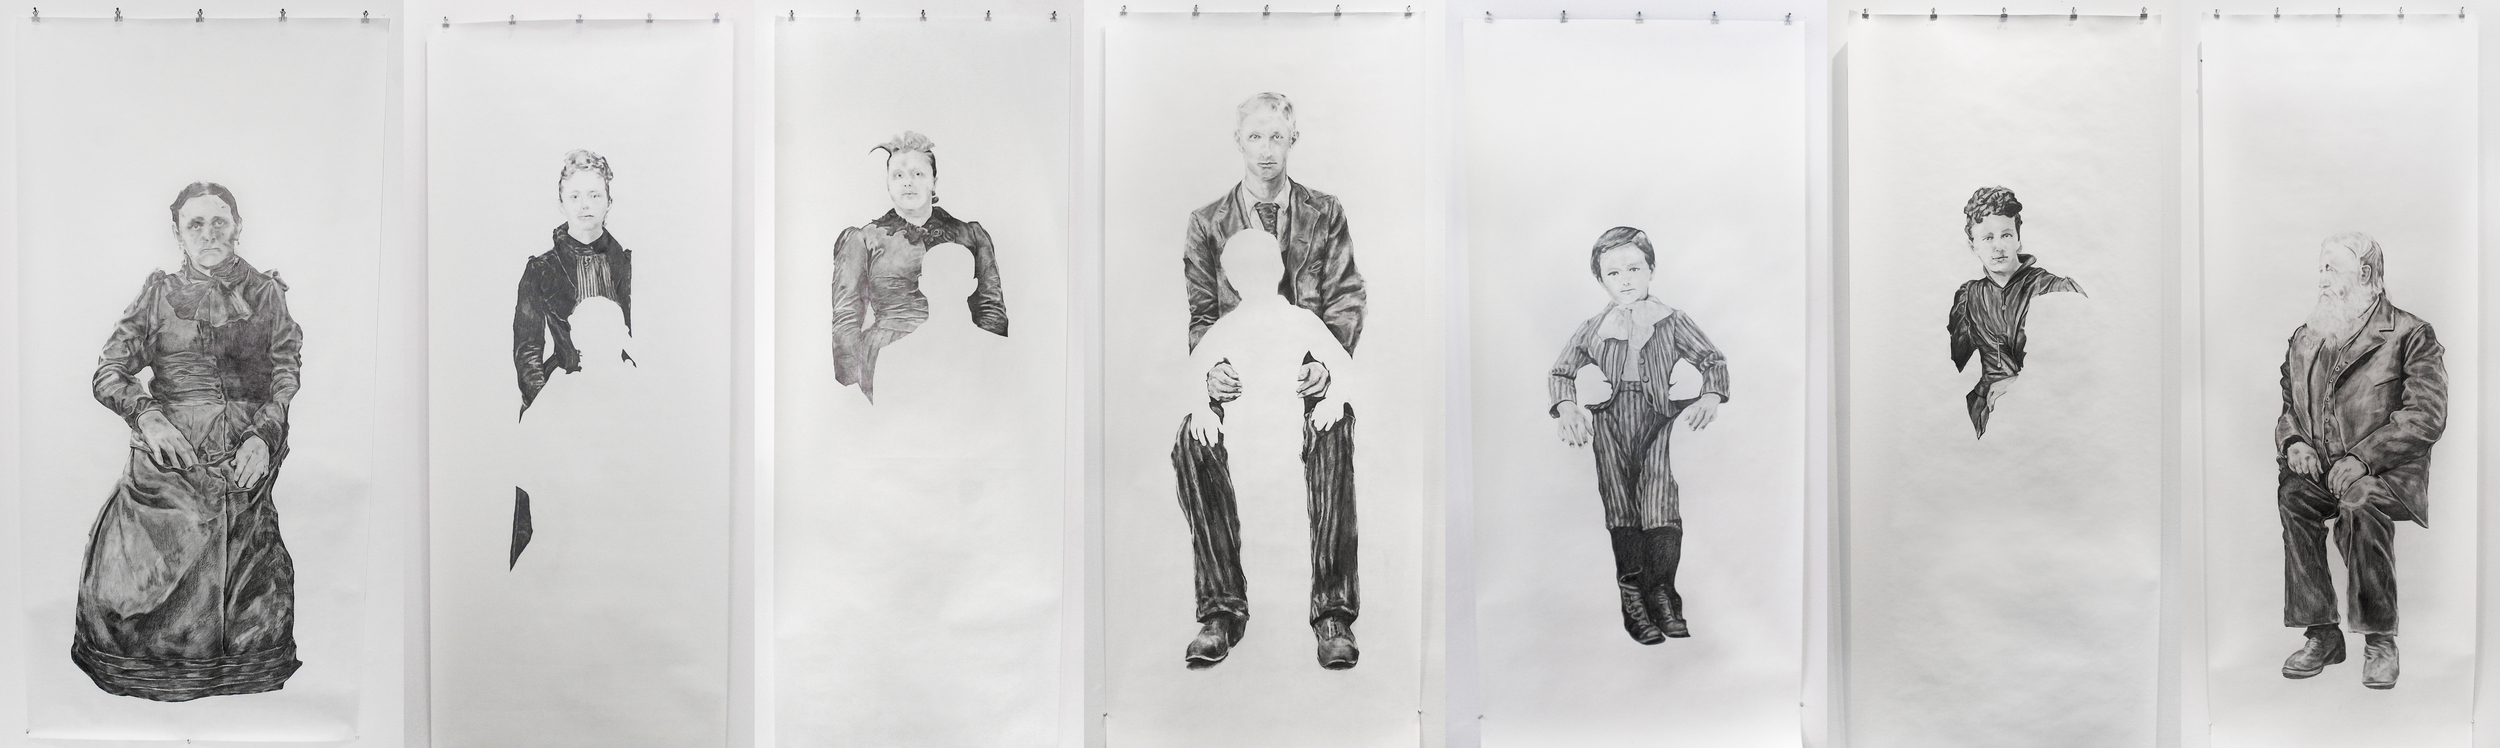 Visual Heritage, 2012   Composite image, graphite on paper scroll